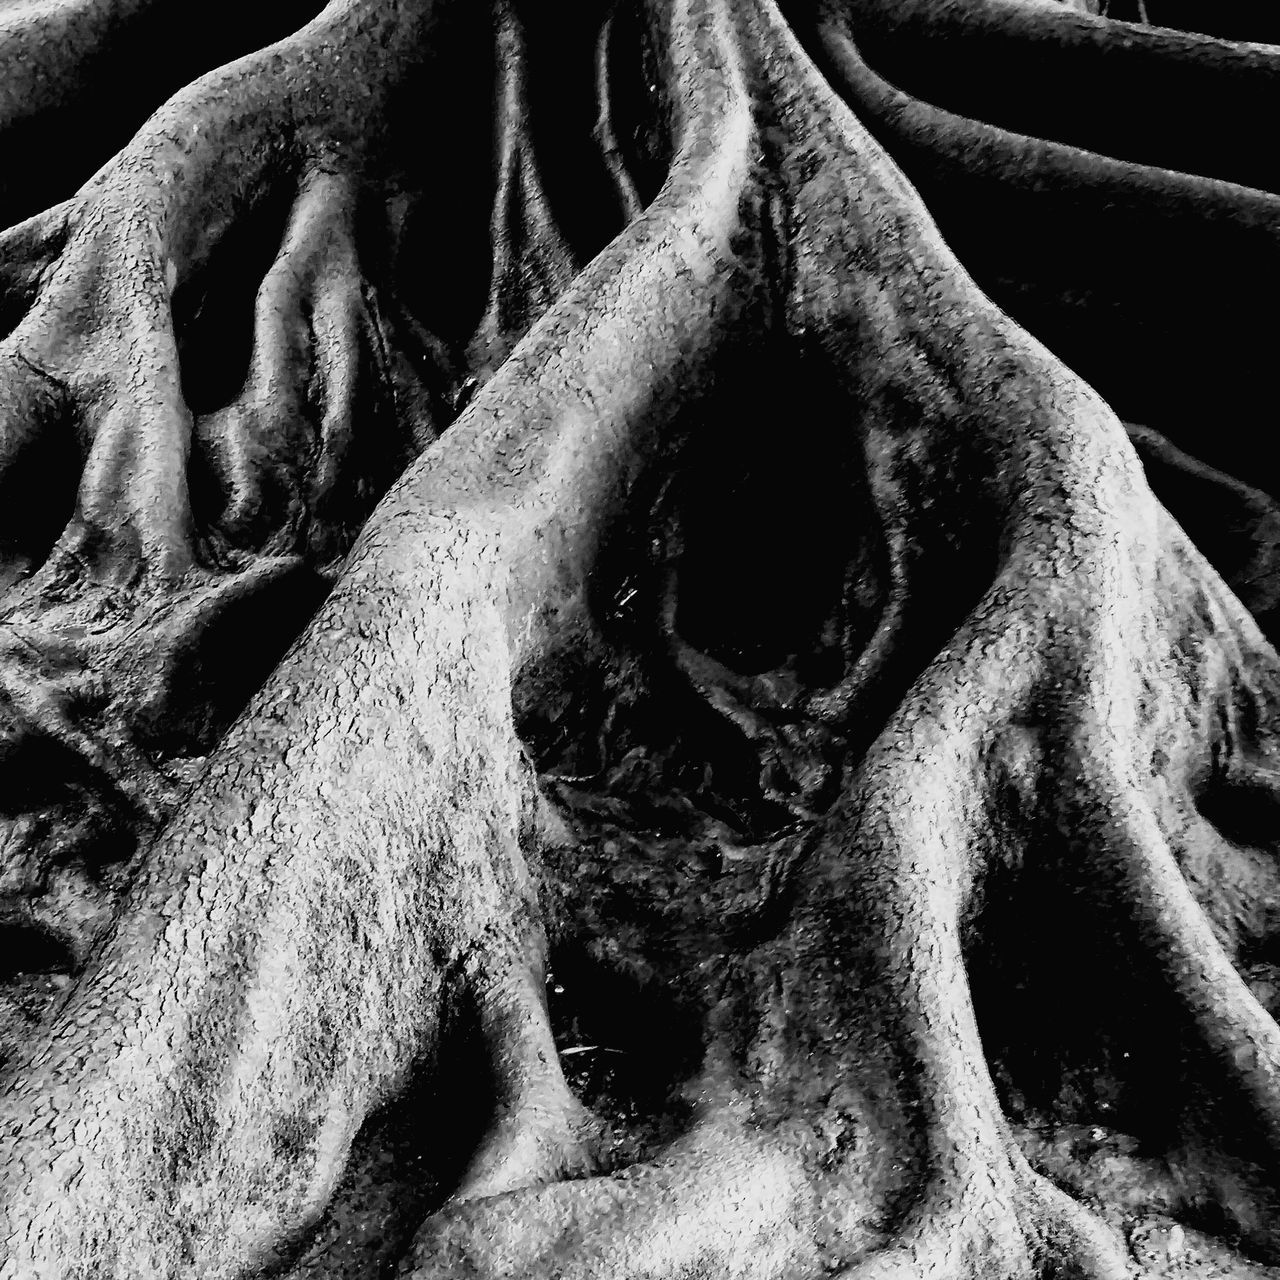 no people, close-up, full frame, backgrounds, dirt, old, plant, day, root, nature, dirty, weathered, decline, tree, strength, metal, outdoors, plant part, pattern, run-down